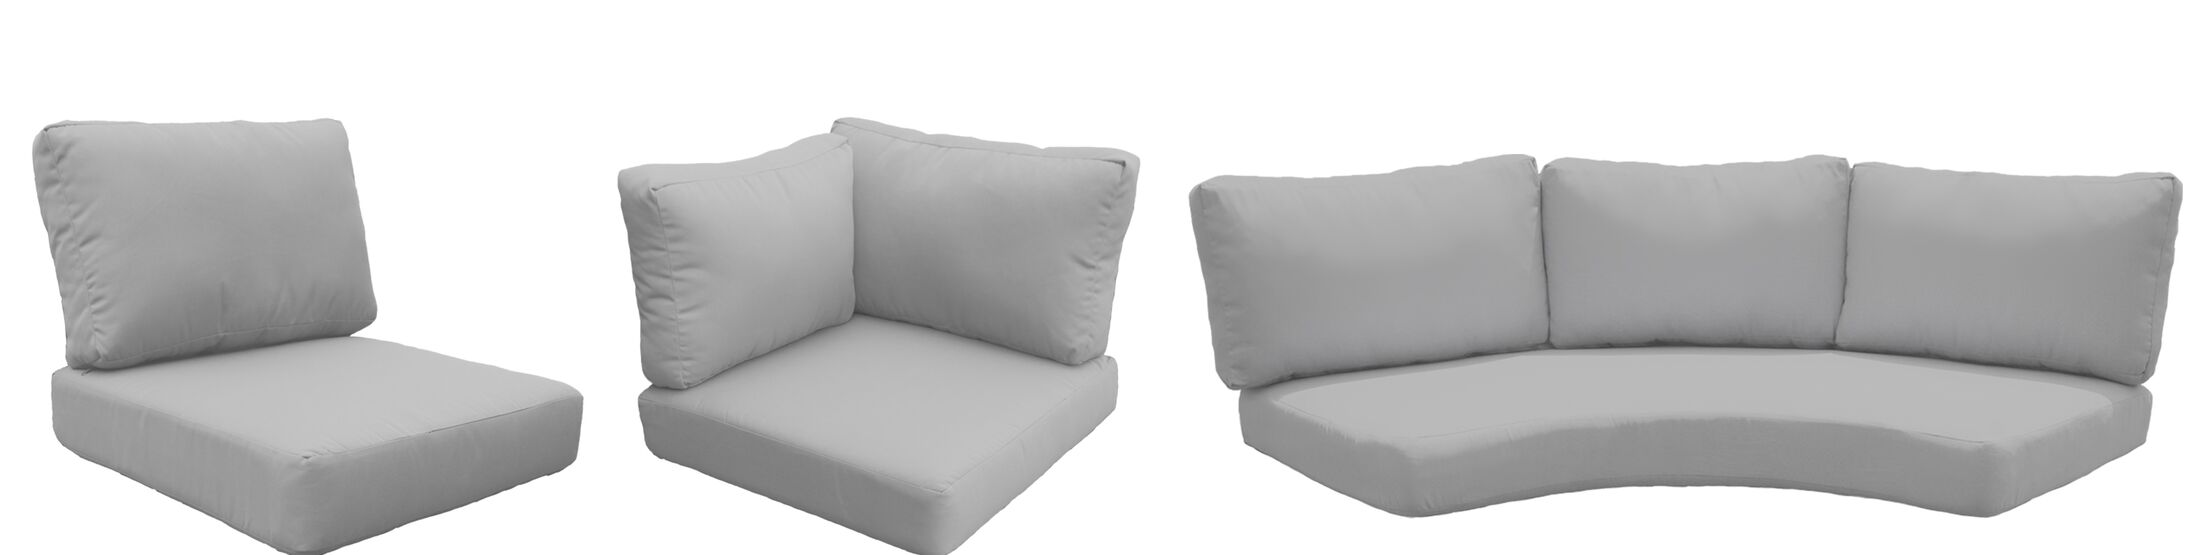 Barbados 14 Piece Outdoor Cushion Set Fabric: Gray